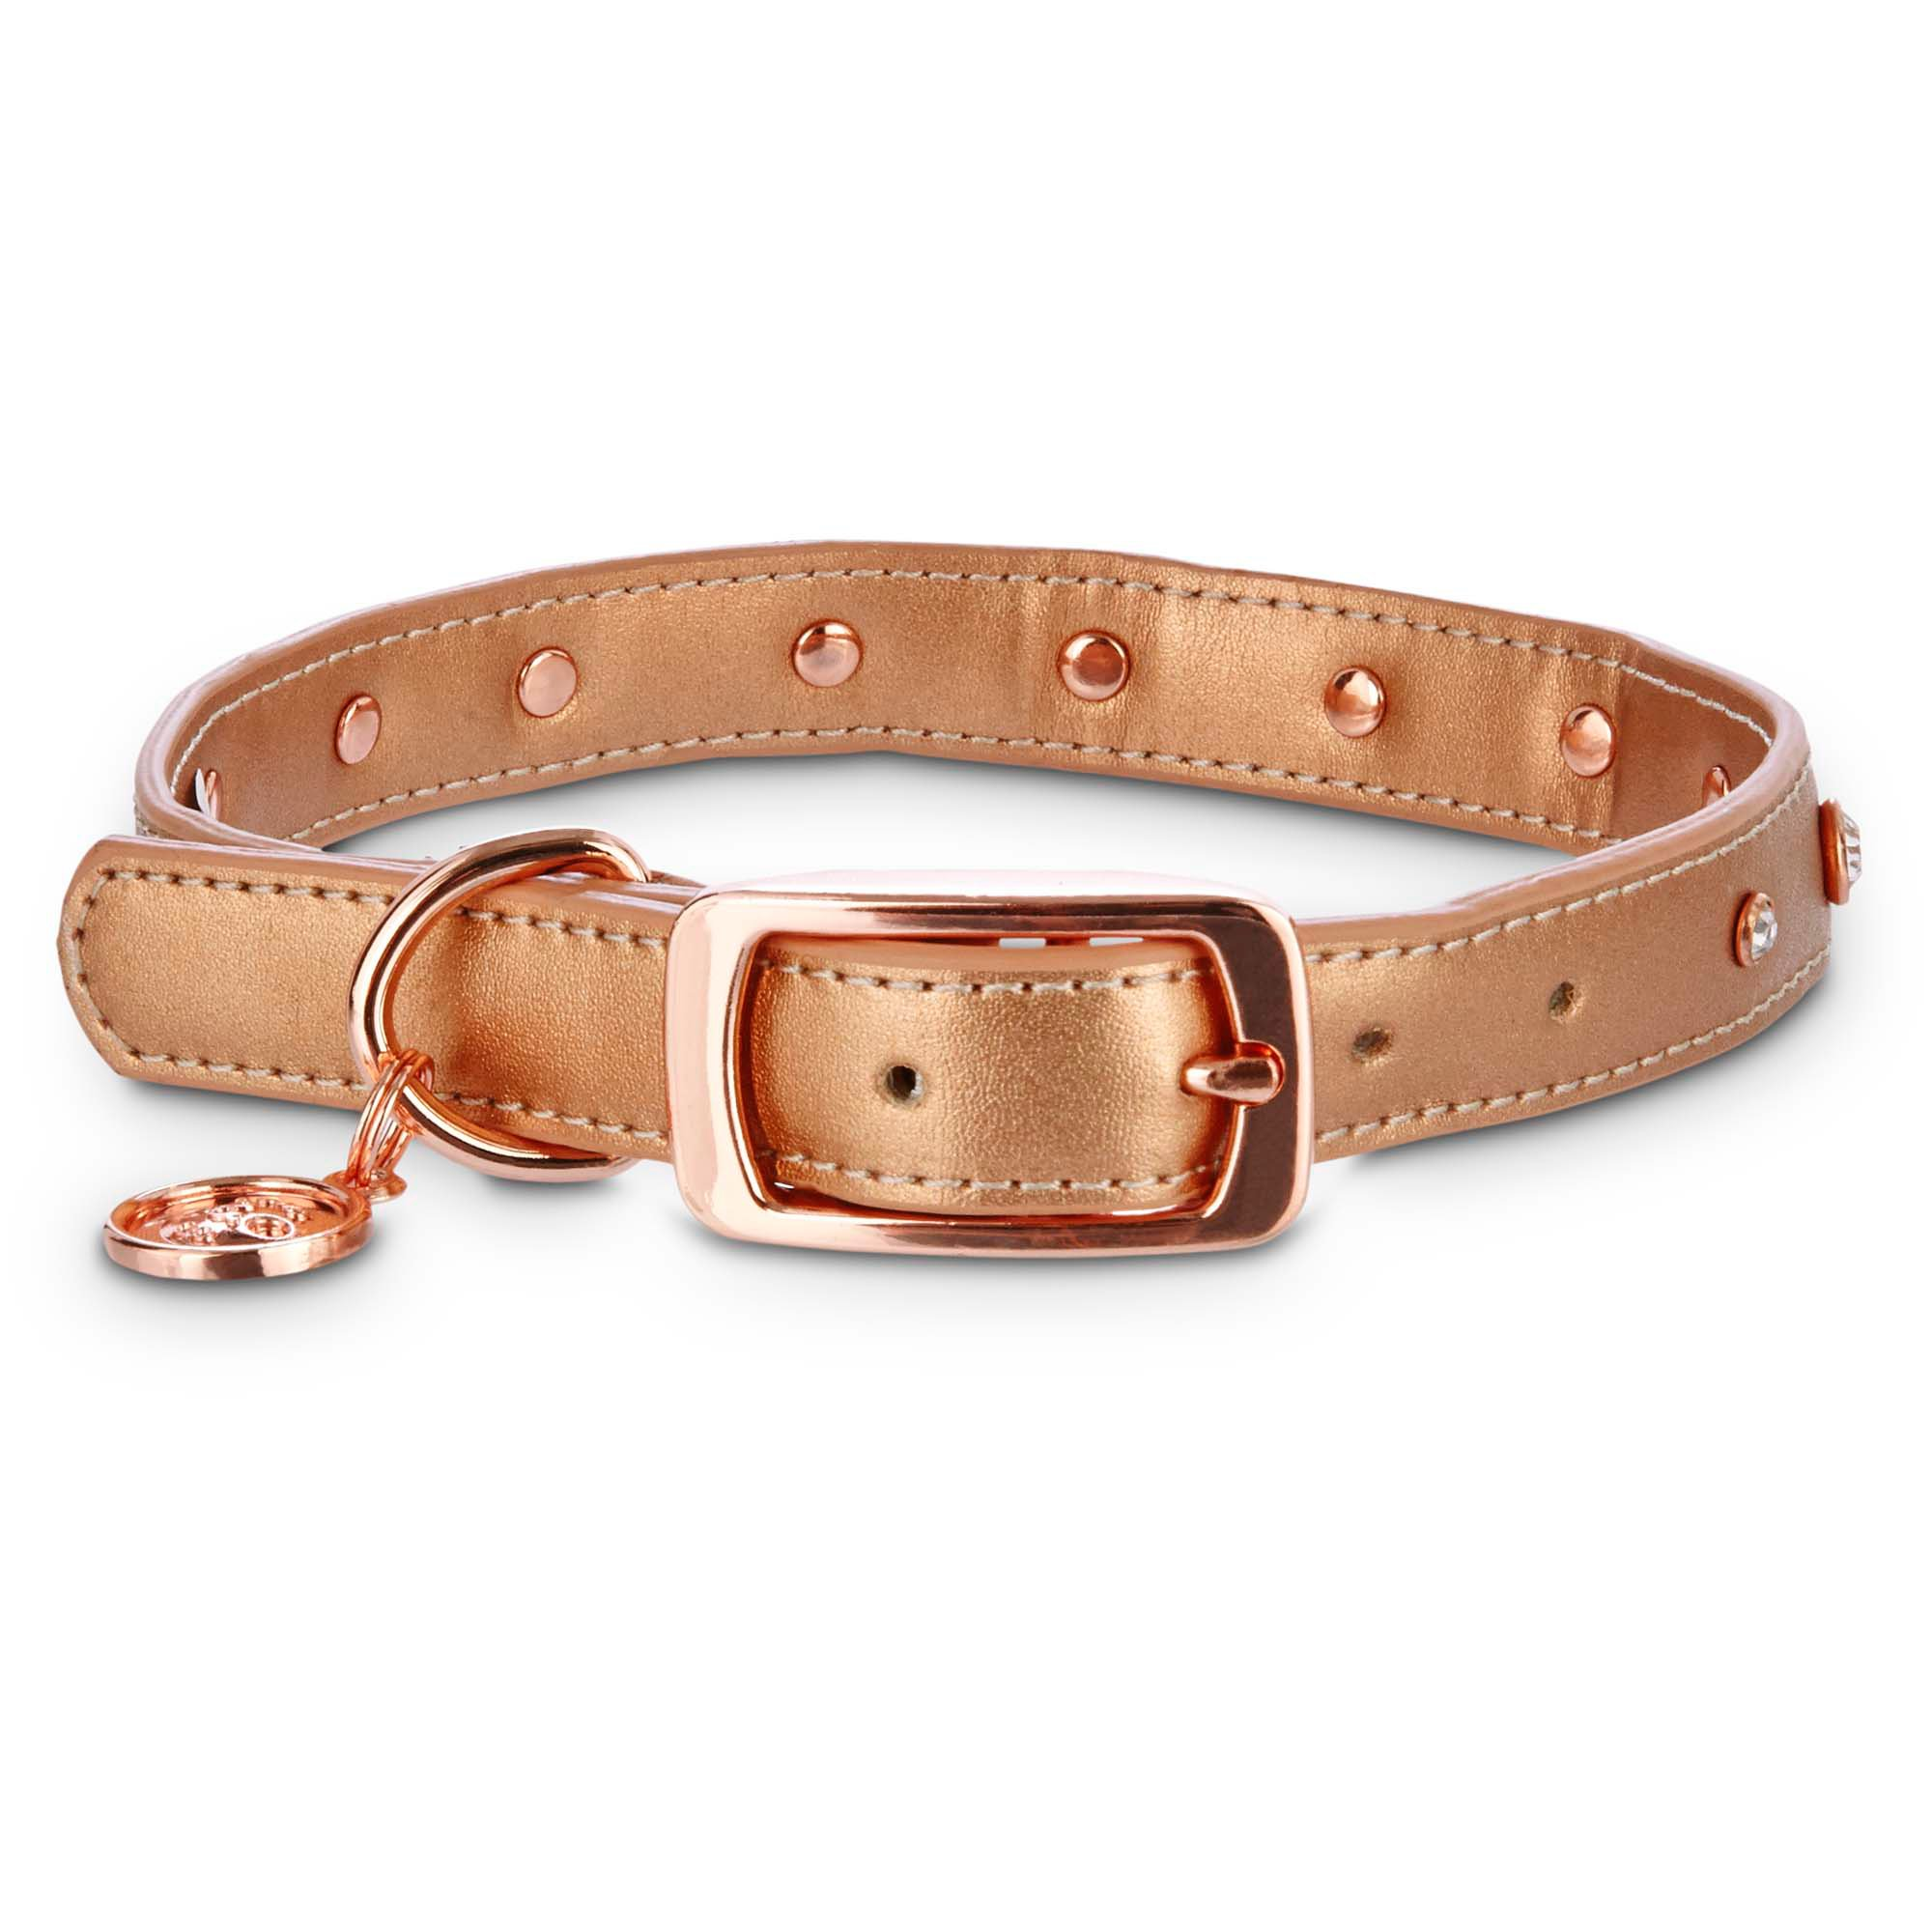 Lighted Dog Collars For Large Dogs